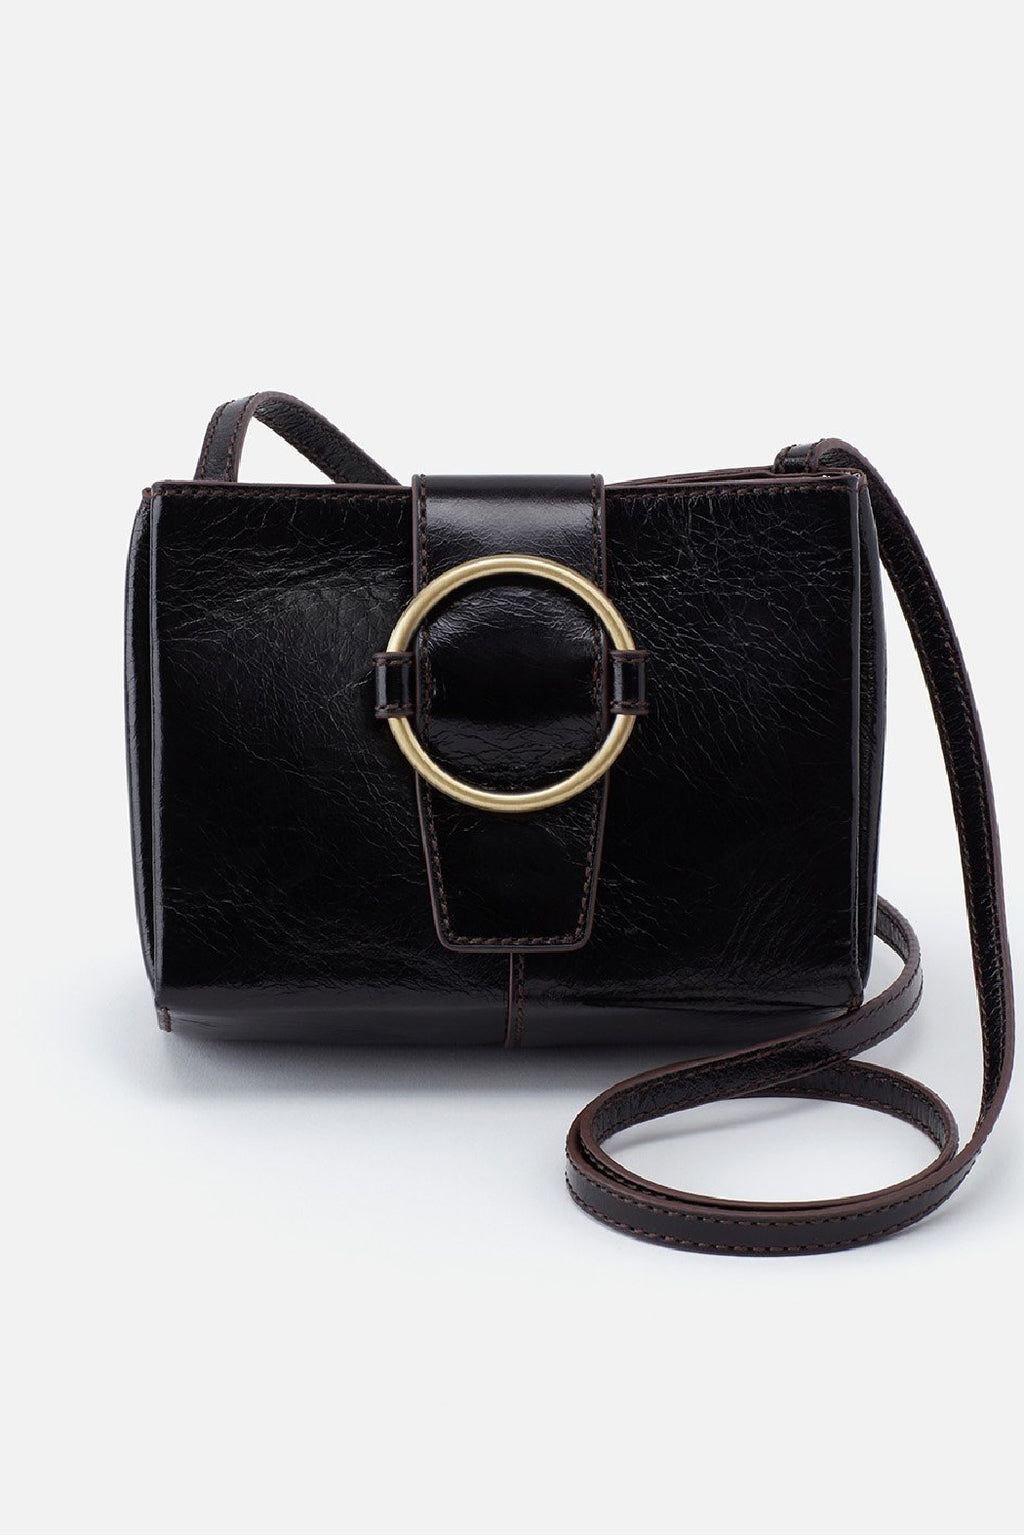 Hobo Elan Adjustable Crossbody